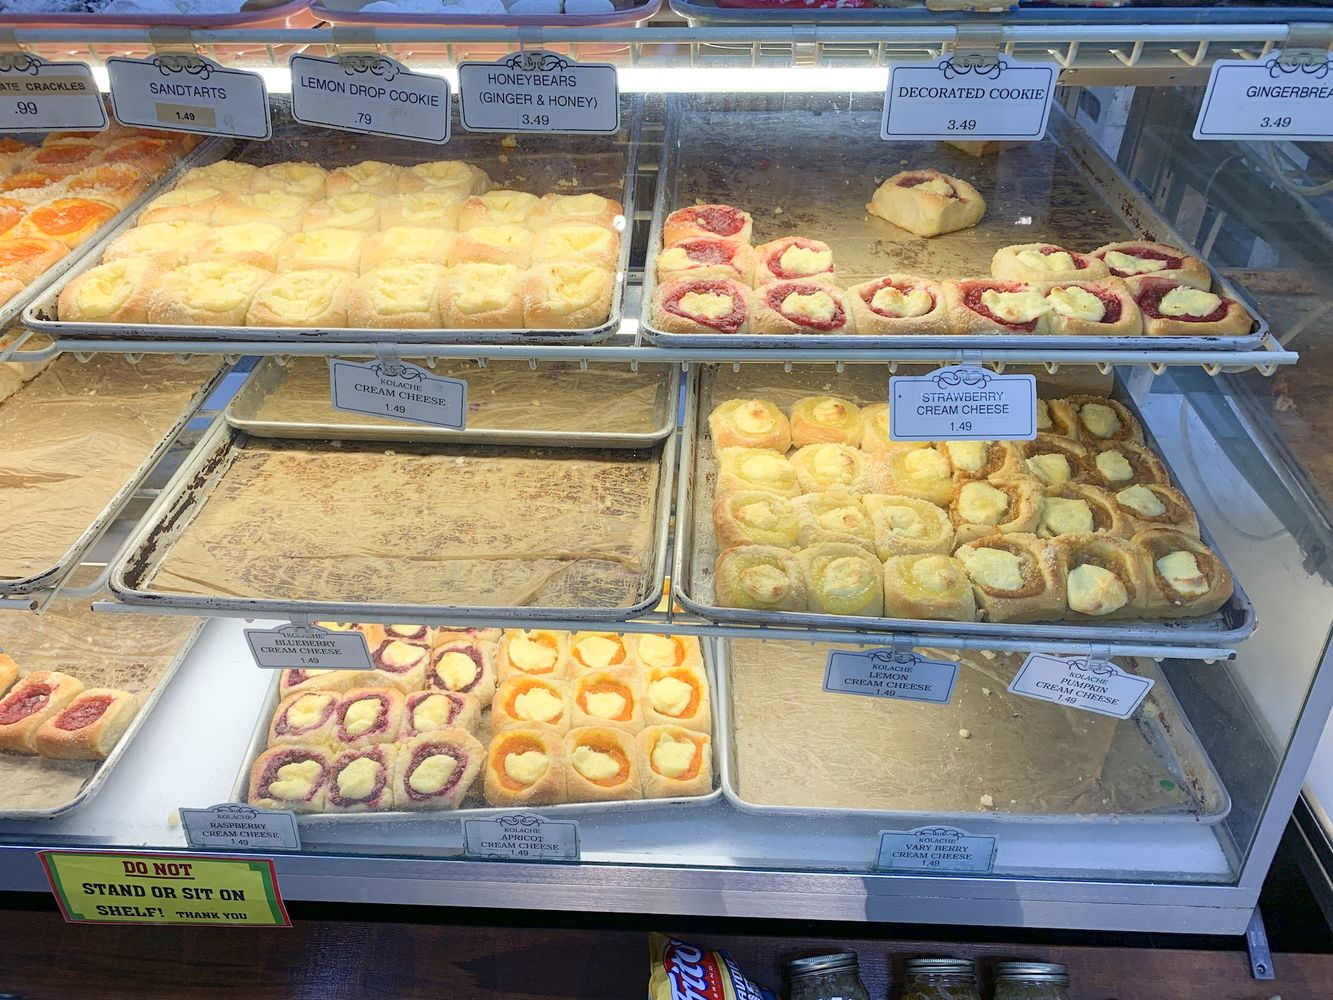 Kolaches at the Czech Stop in West, TX